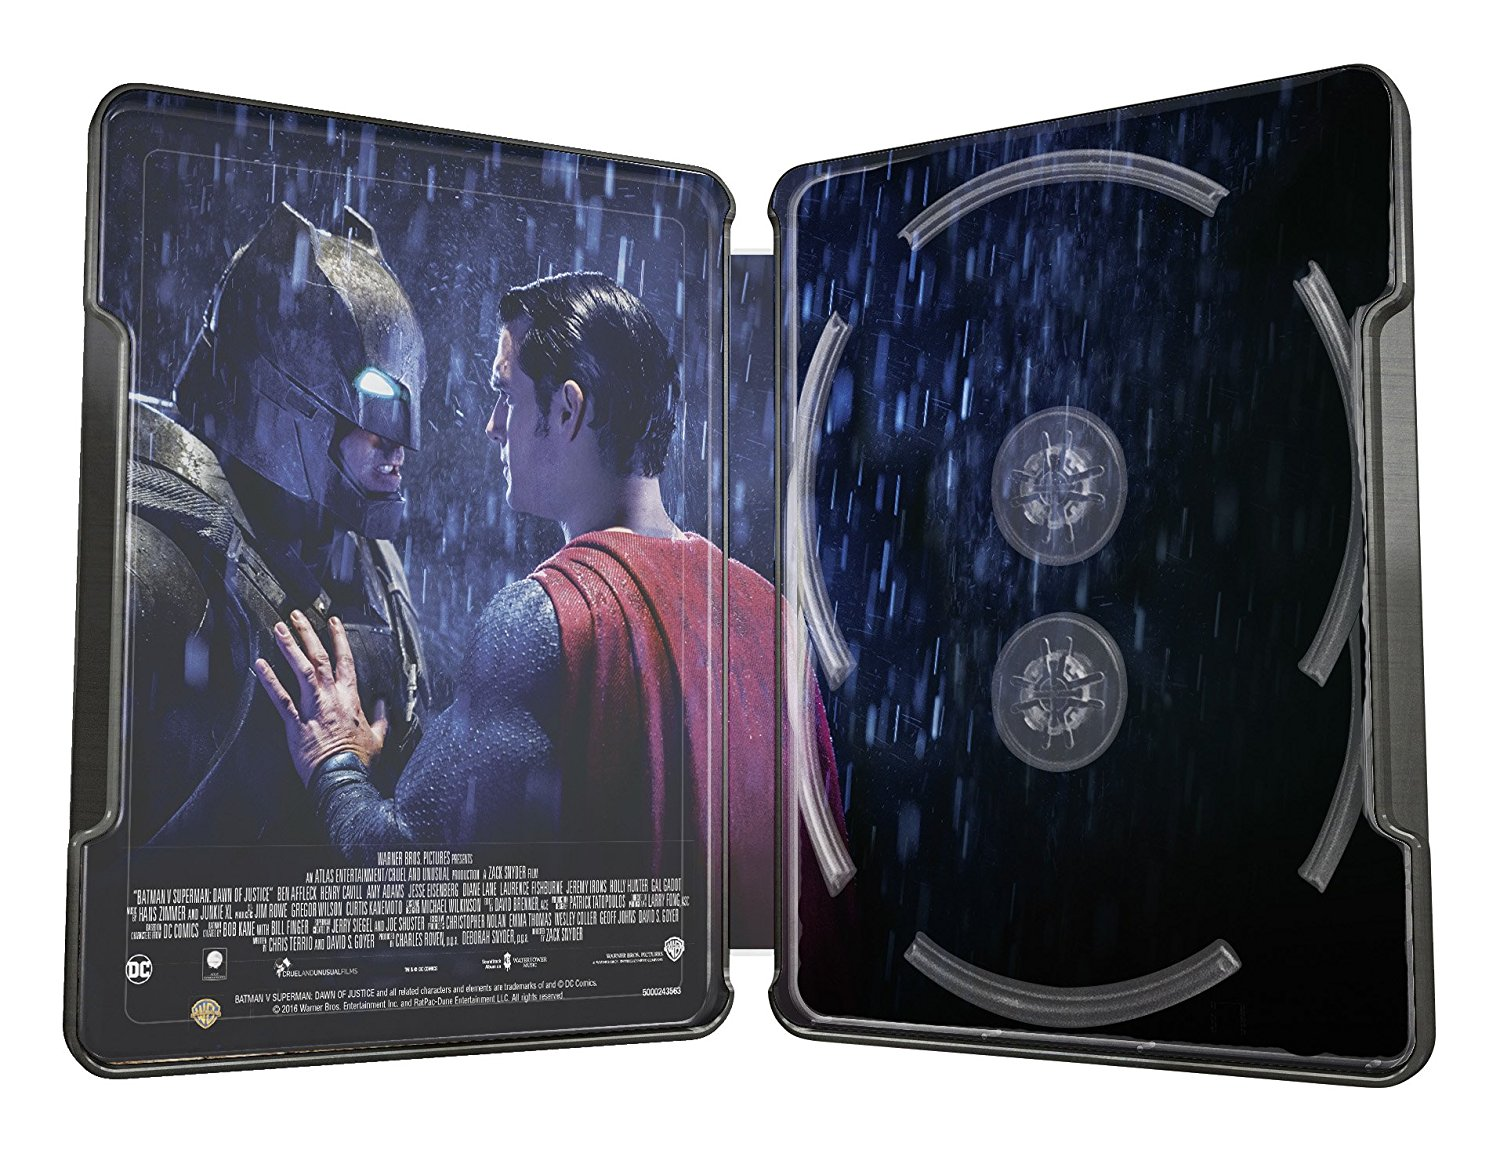 バットマン vs スーパーマン ジャスティスの誕生 スチールブック Batman v Superman: Dawn of Justice Ultimate Edition Illustrated Artwork Steelbook